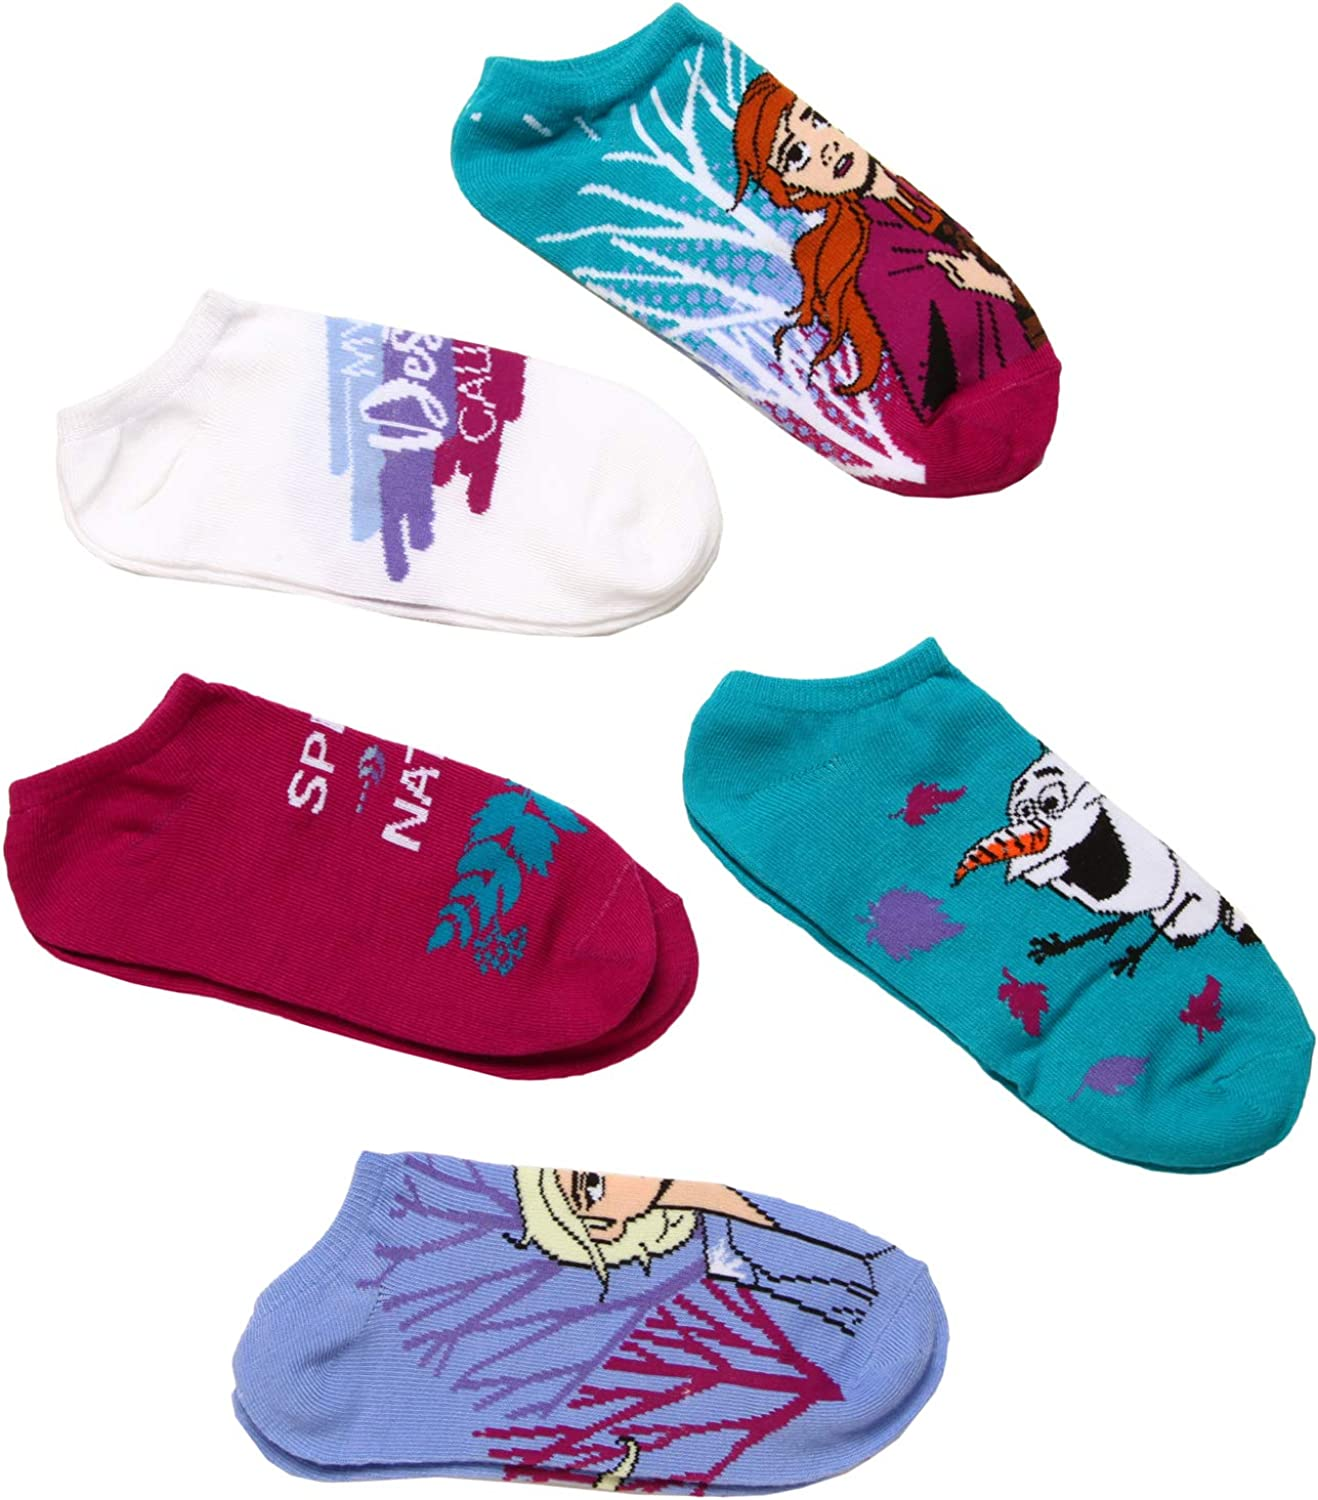 NEW Disney Frozen Anna /& Elsa girl/'s socks 6 pack size 9-11 youth no show